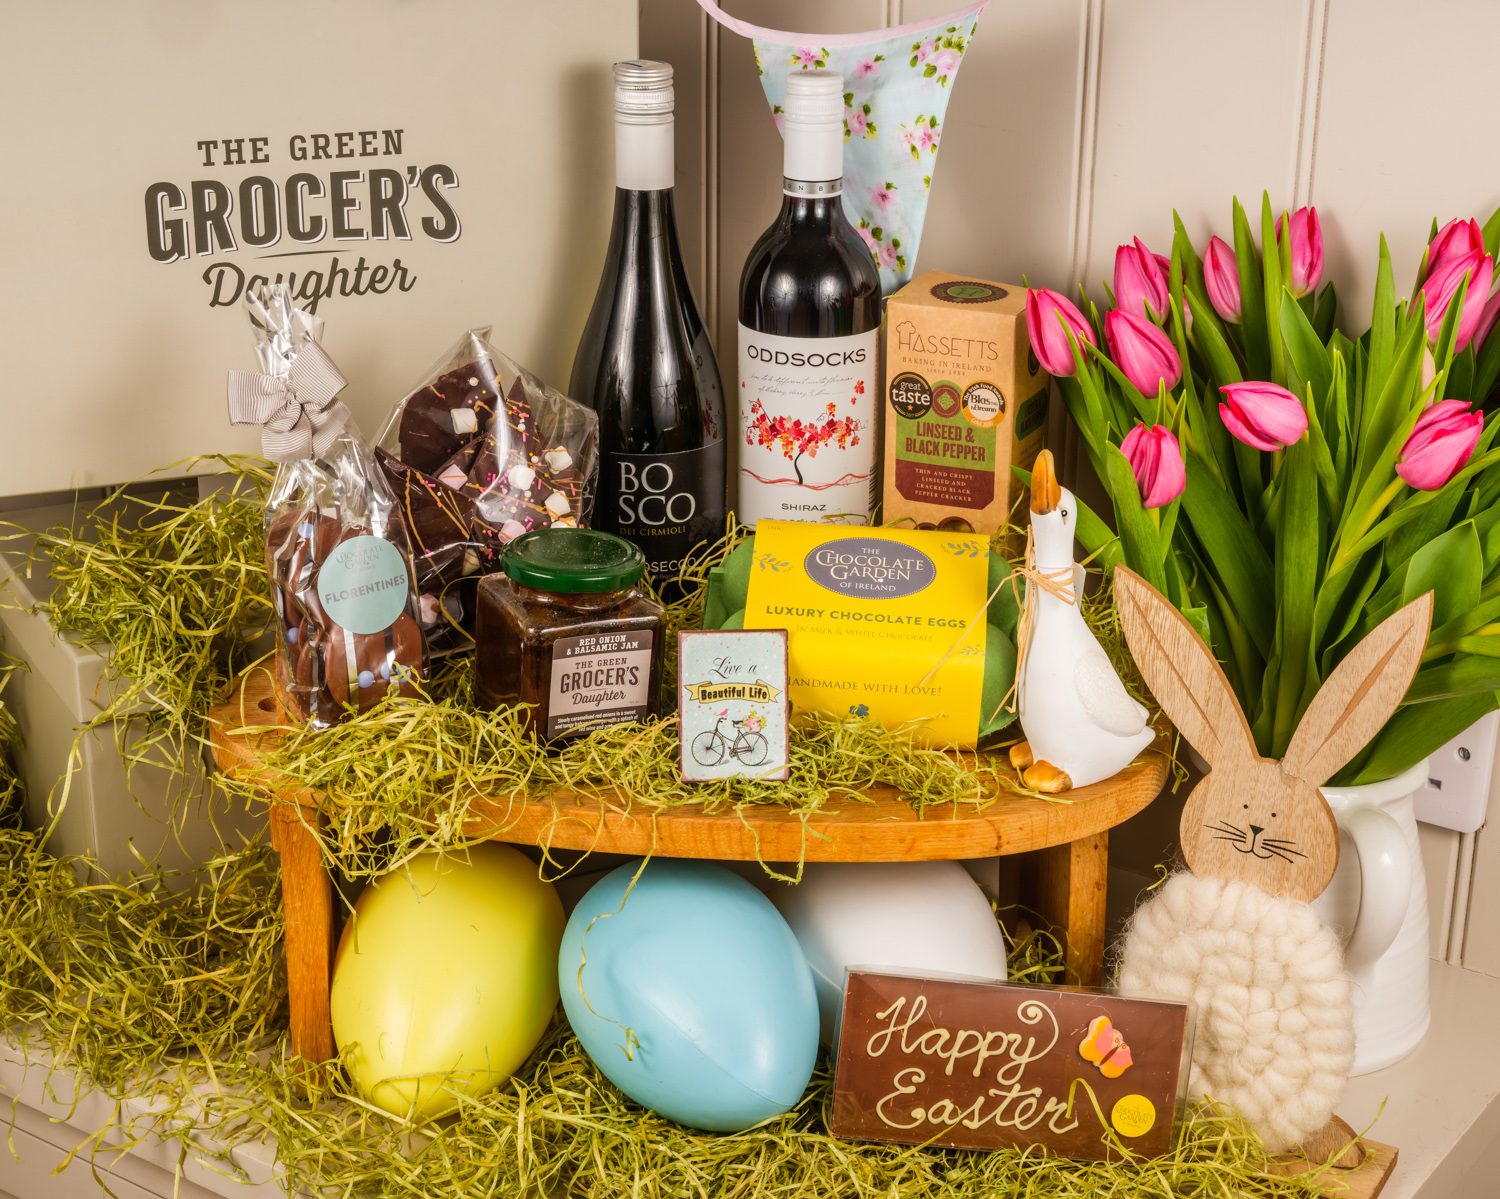 Send the Perfect Gift This Easter The Greengrocer's Daughter Luxury Hampers